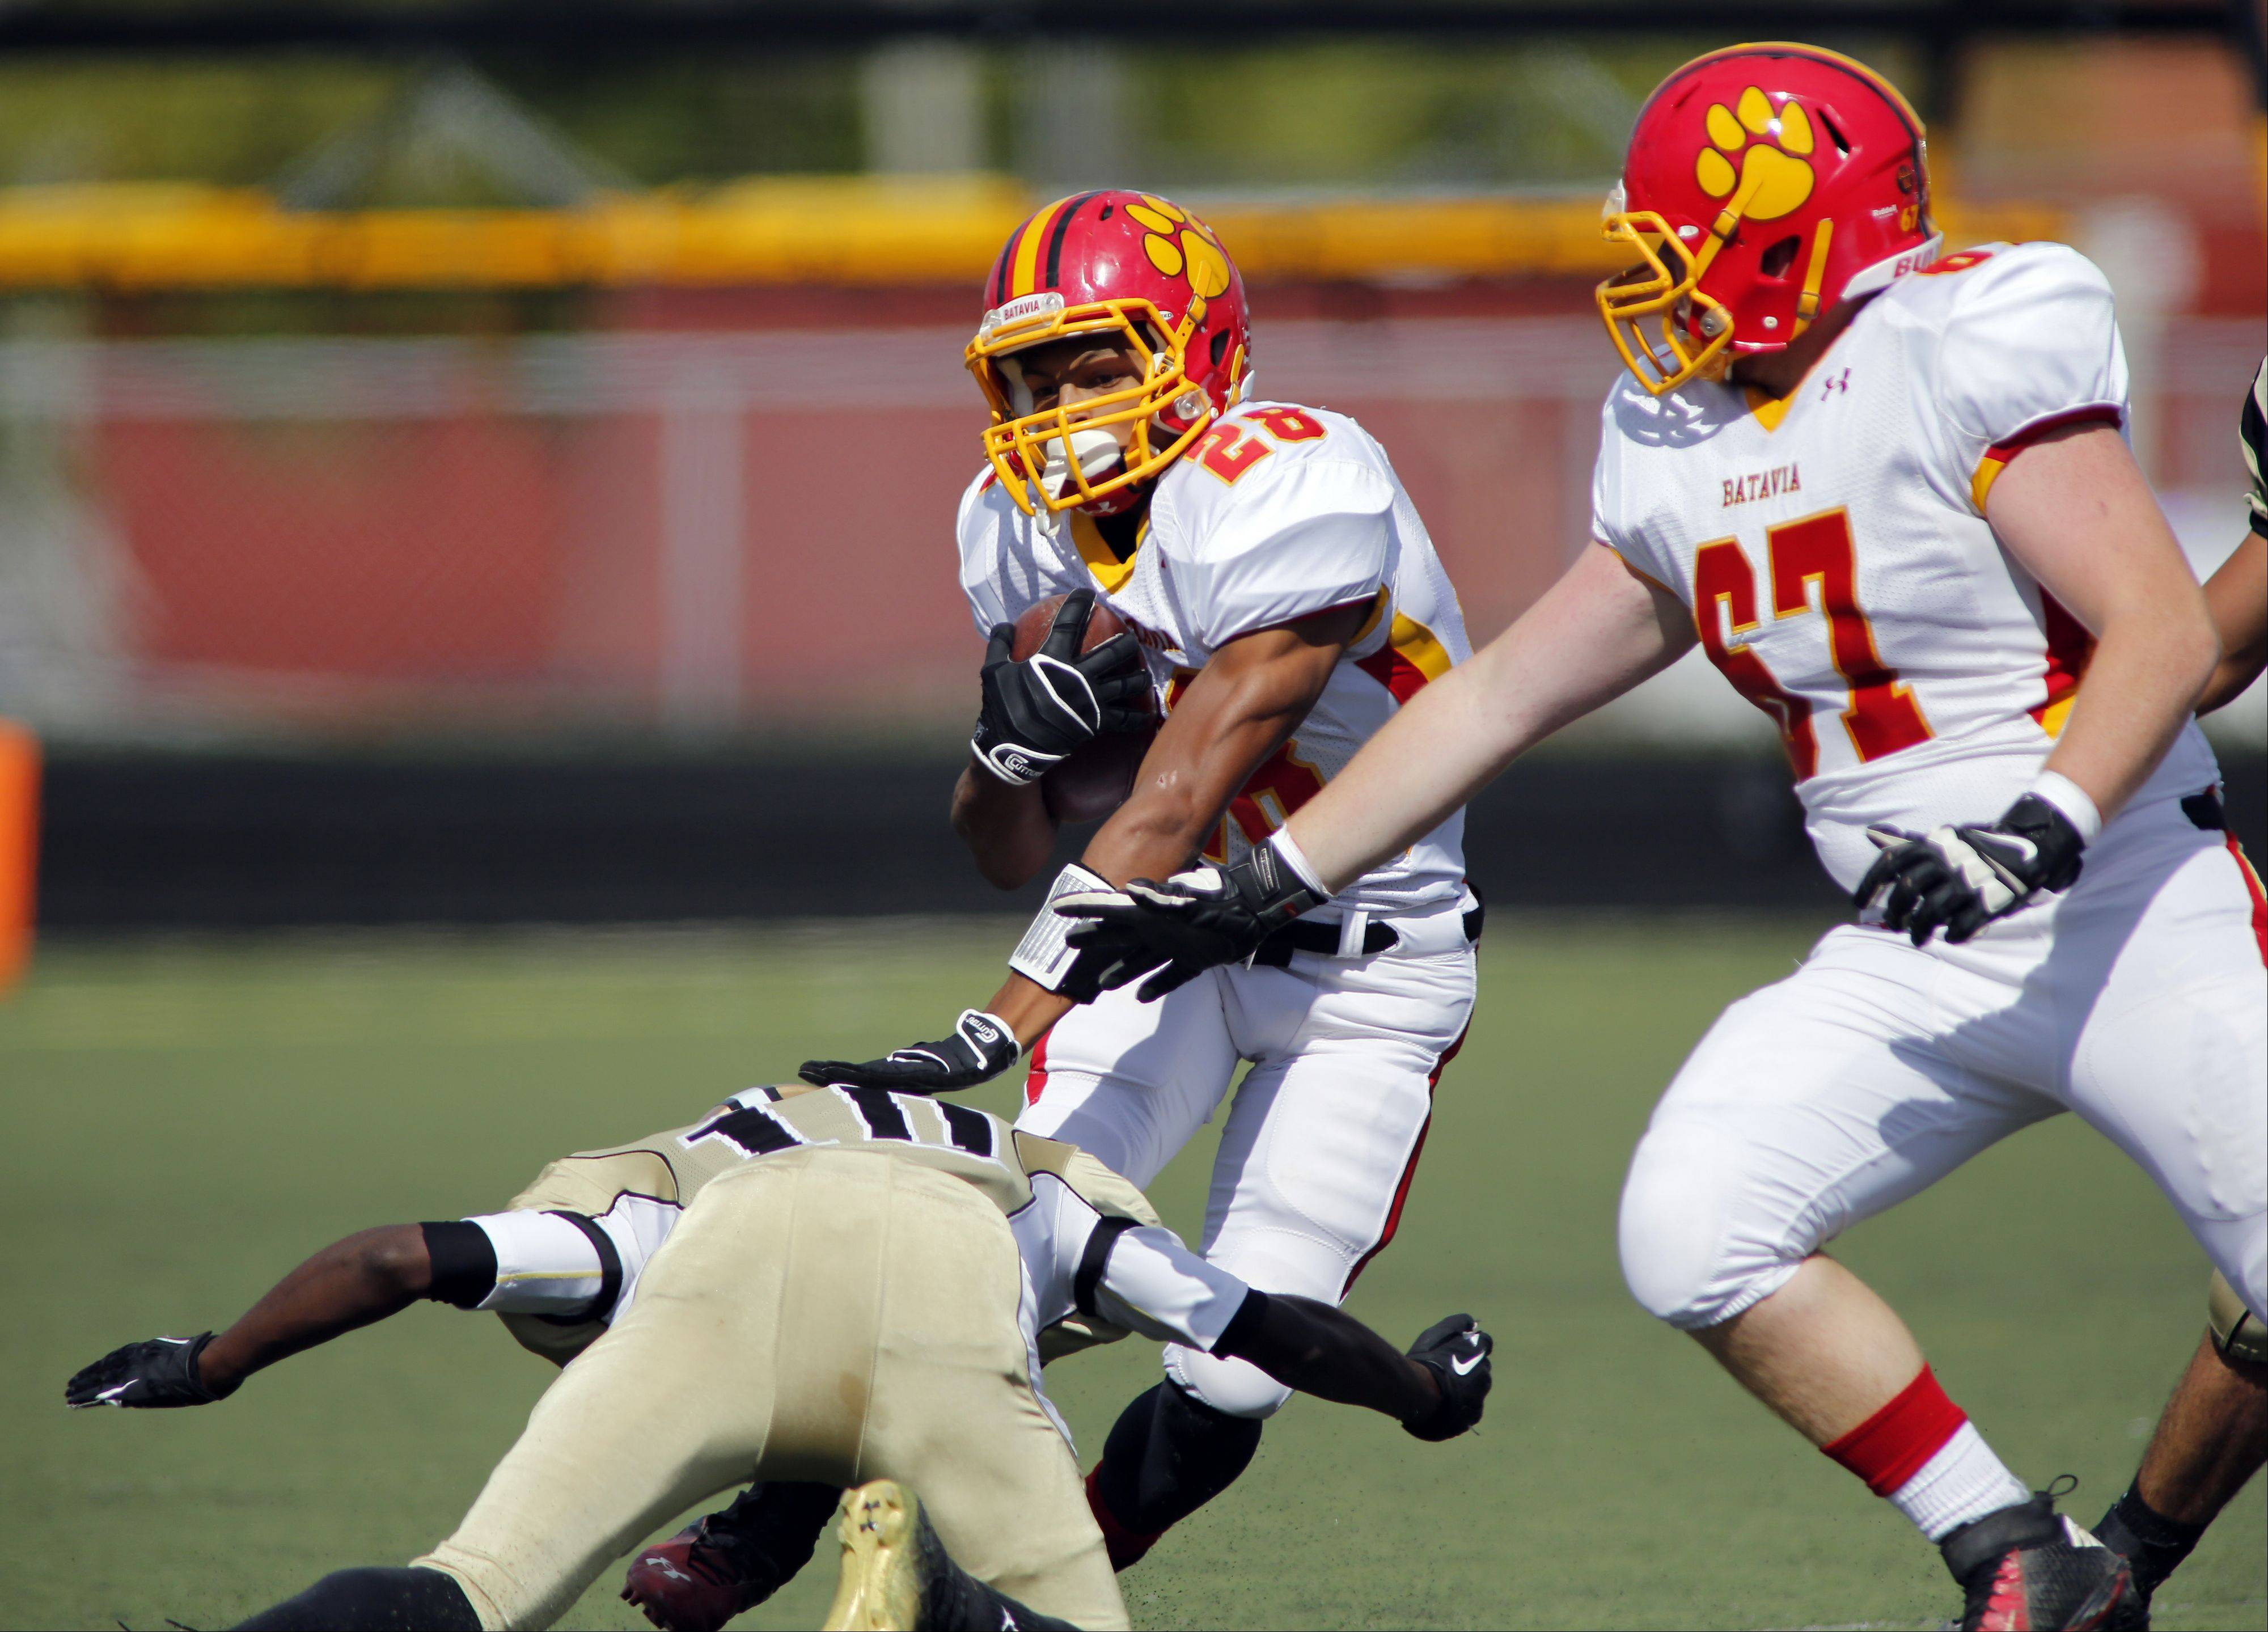 Batavia's Anthony Scaccia works upfield past Streamwood's Jelyn Hill, during Batavia at Streamwood football Saturday at Millennium Field at Streamwood High School.